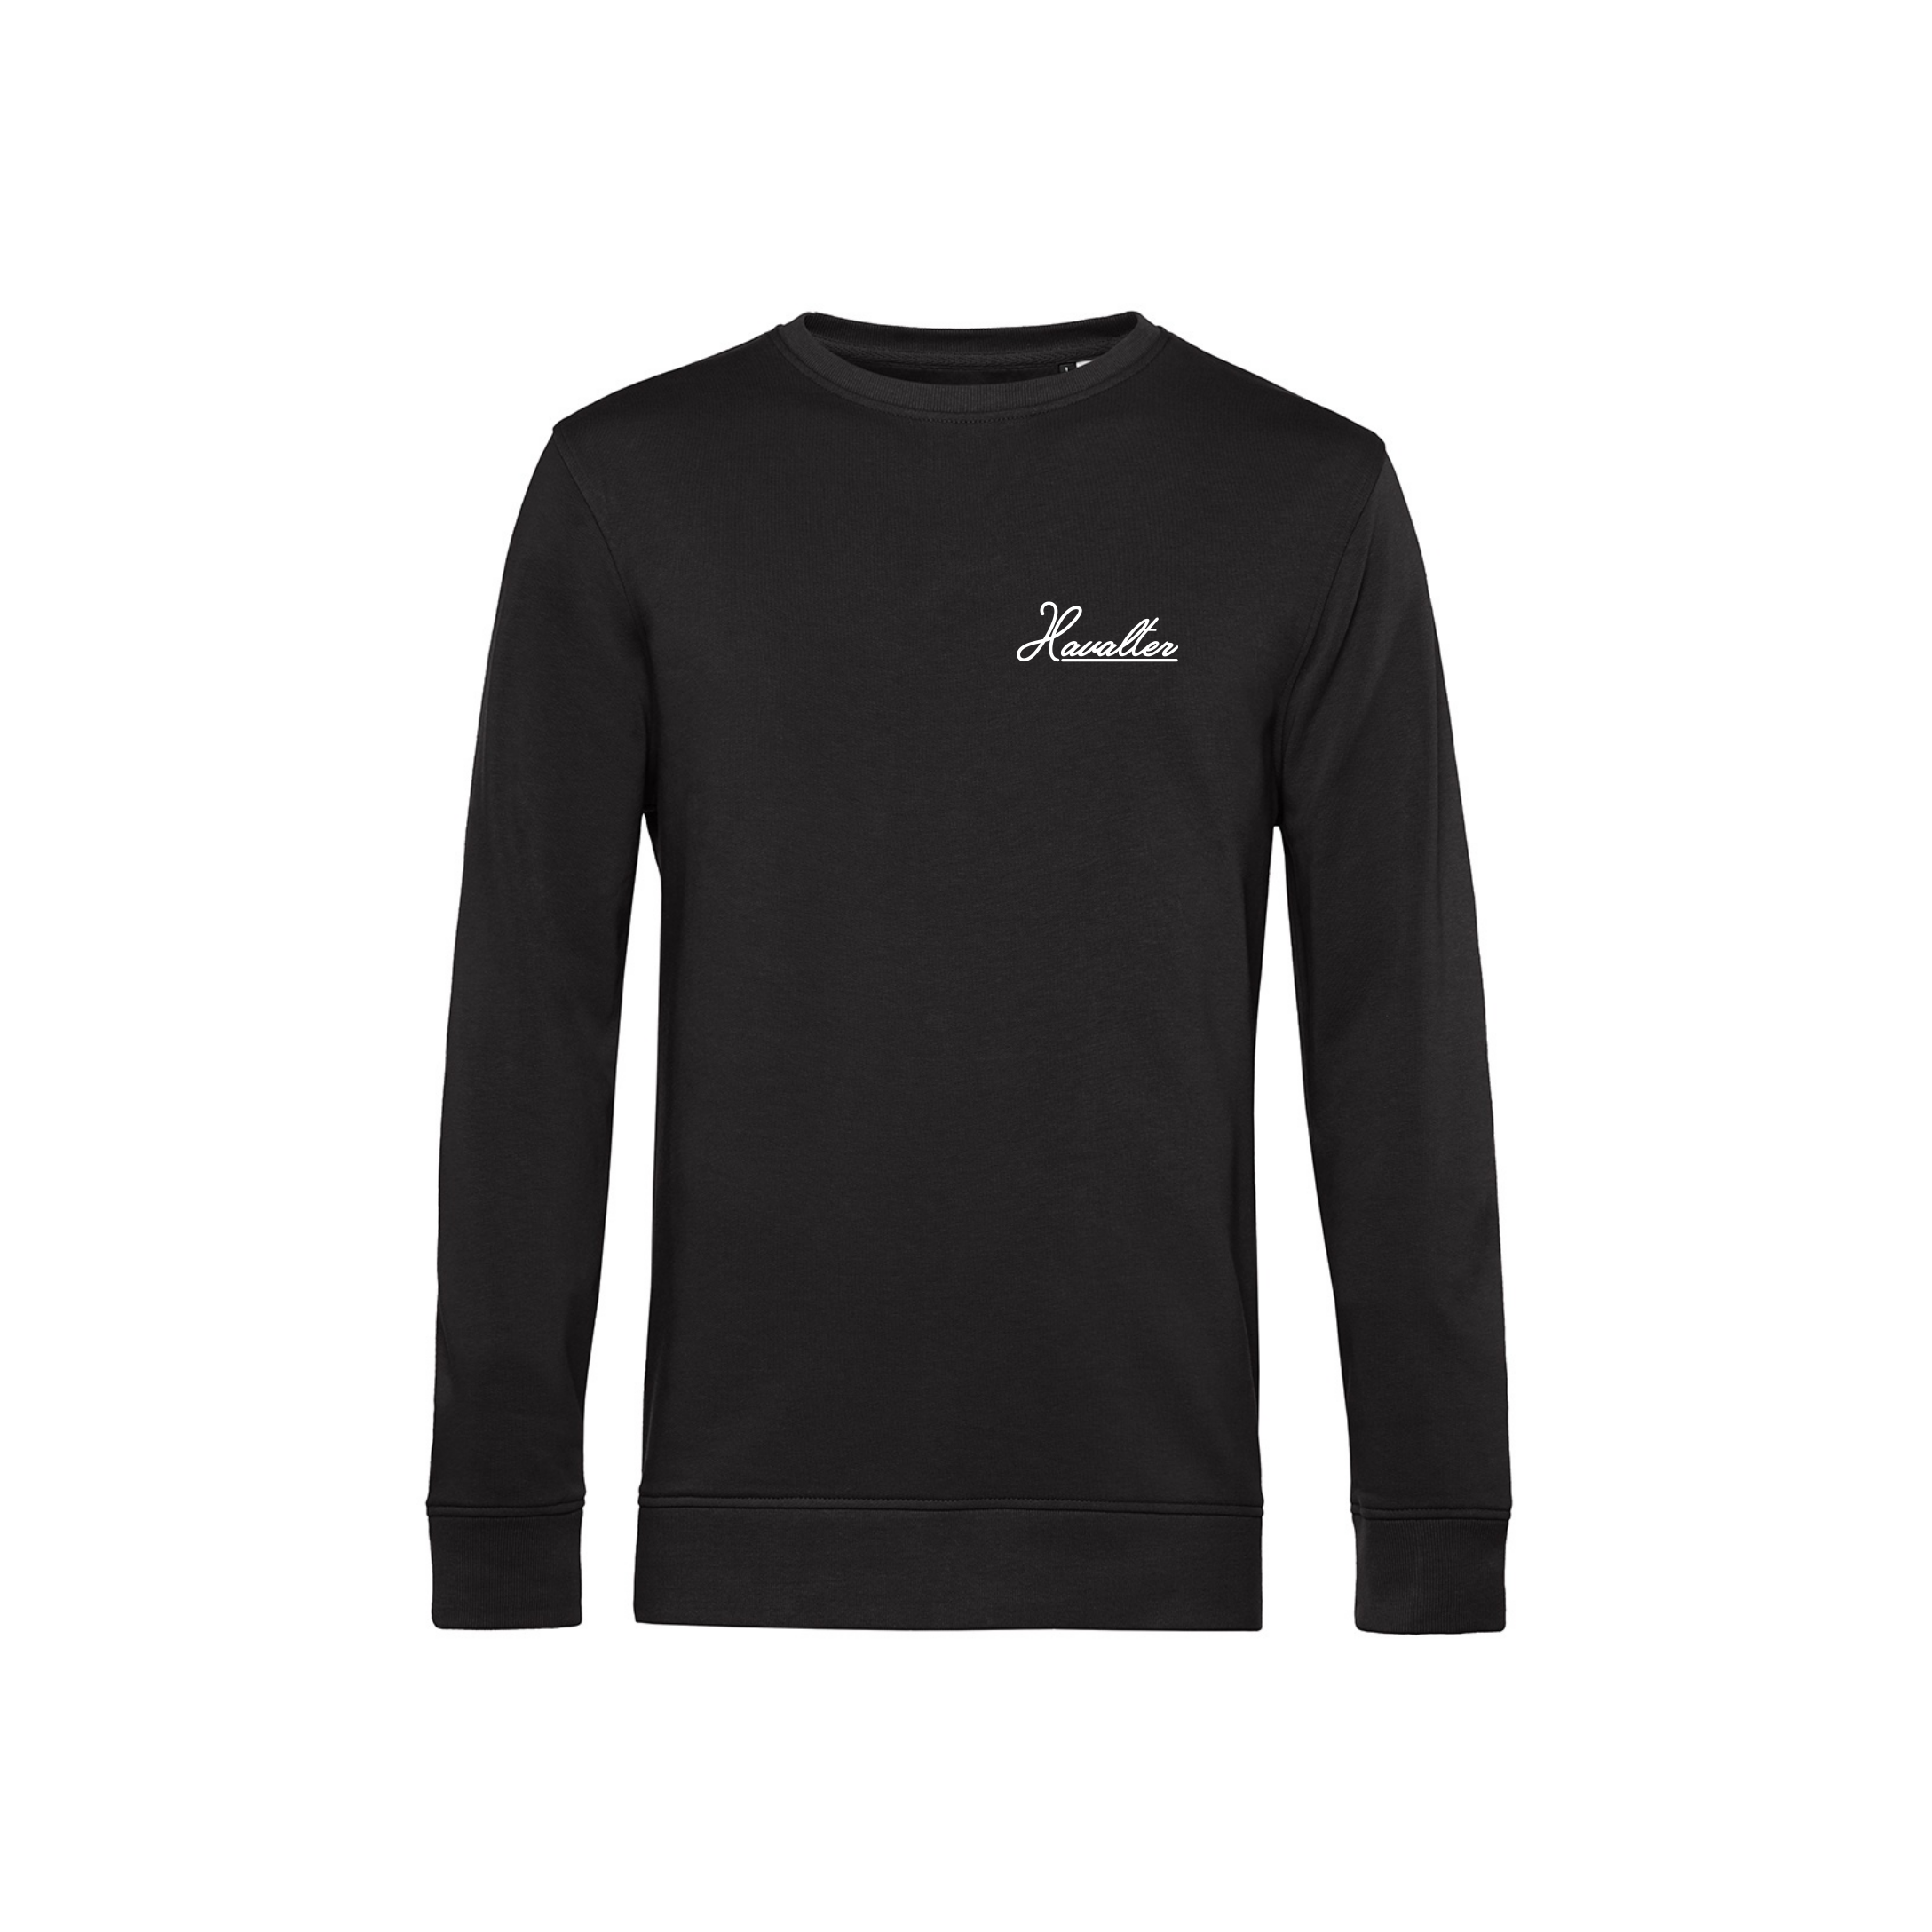 HAVALTER SWEATER BLACK SMALL LOGO, UNISEX